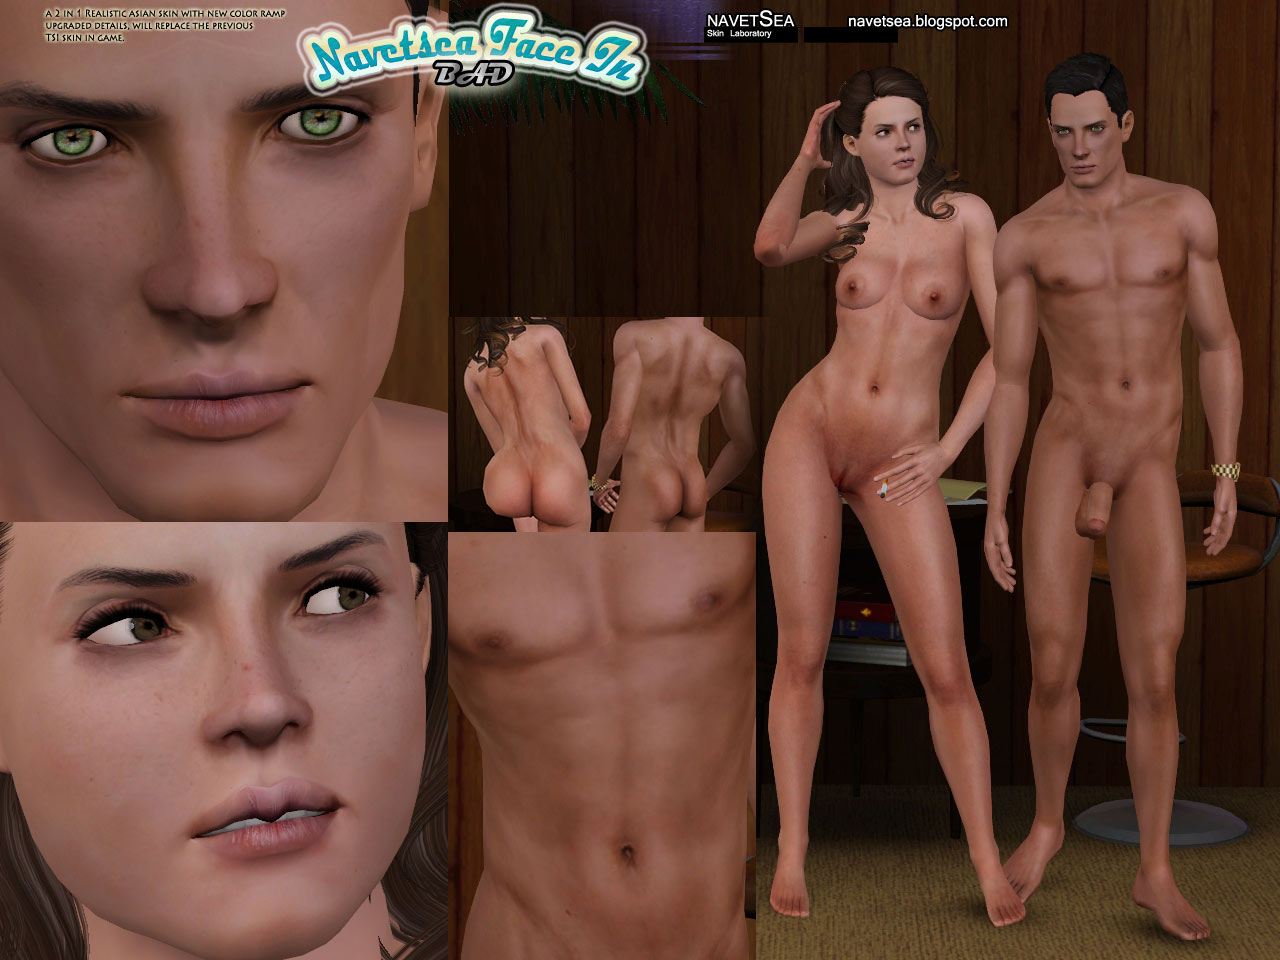 The sims 4 hd nude skin nude photo